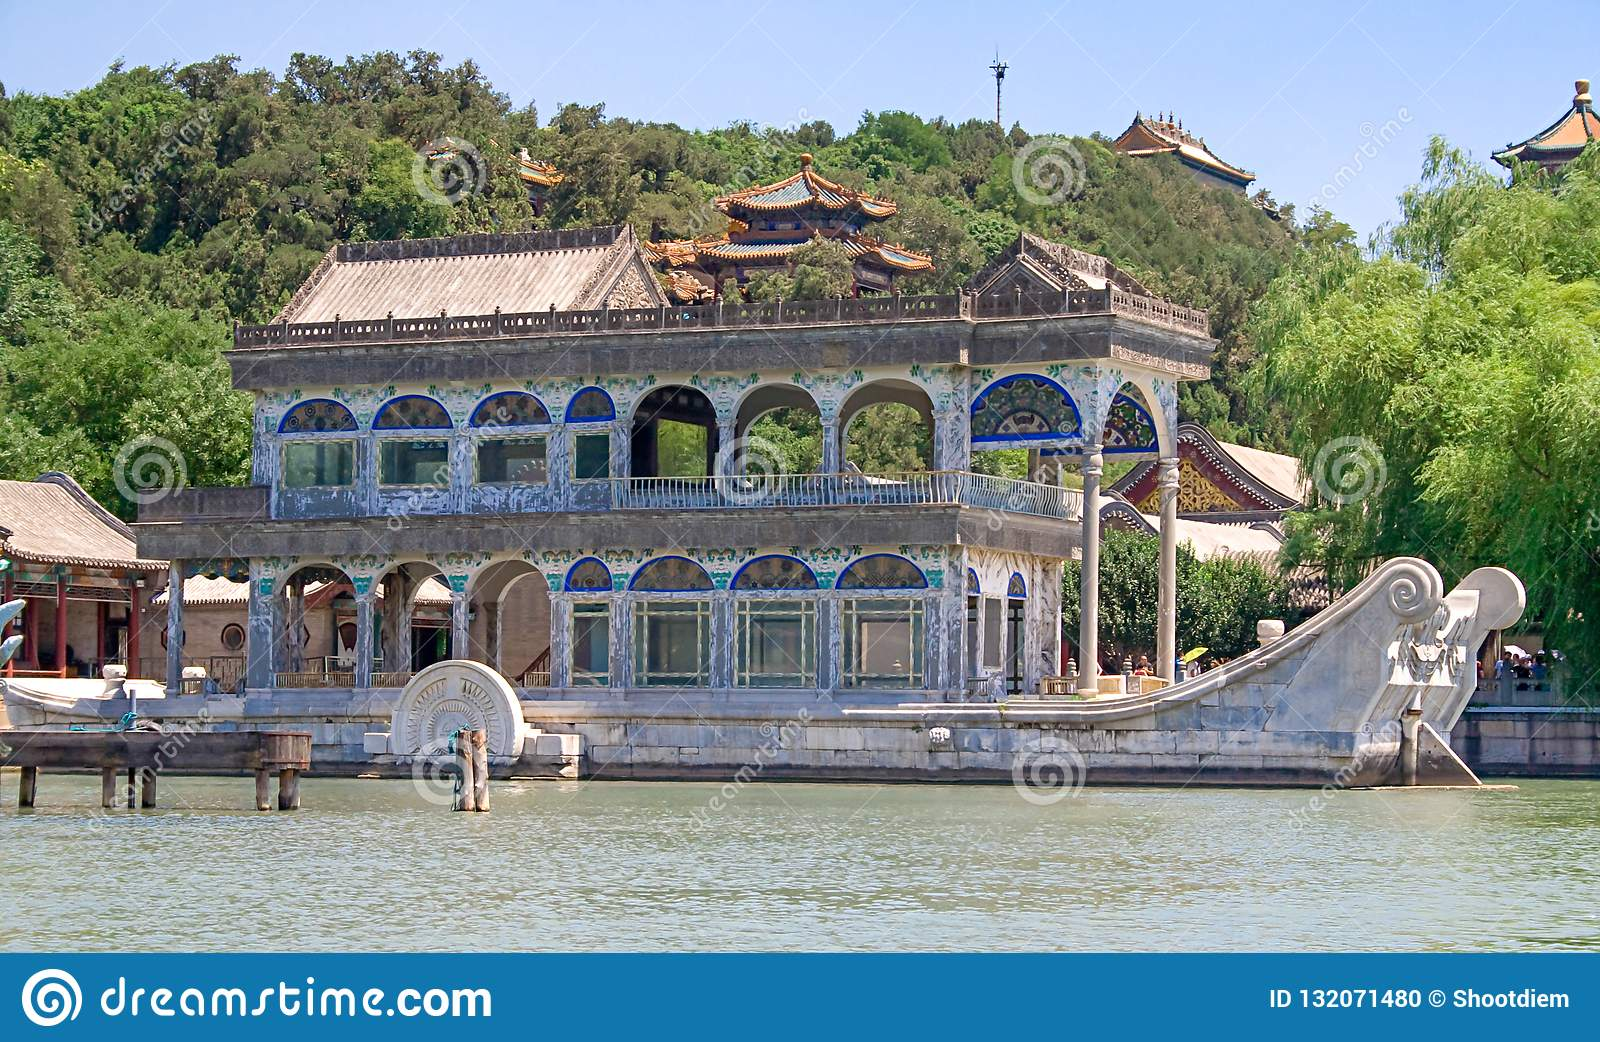 Asia Carrera Marble marble boat also known as the boat of purity and ease in